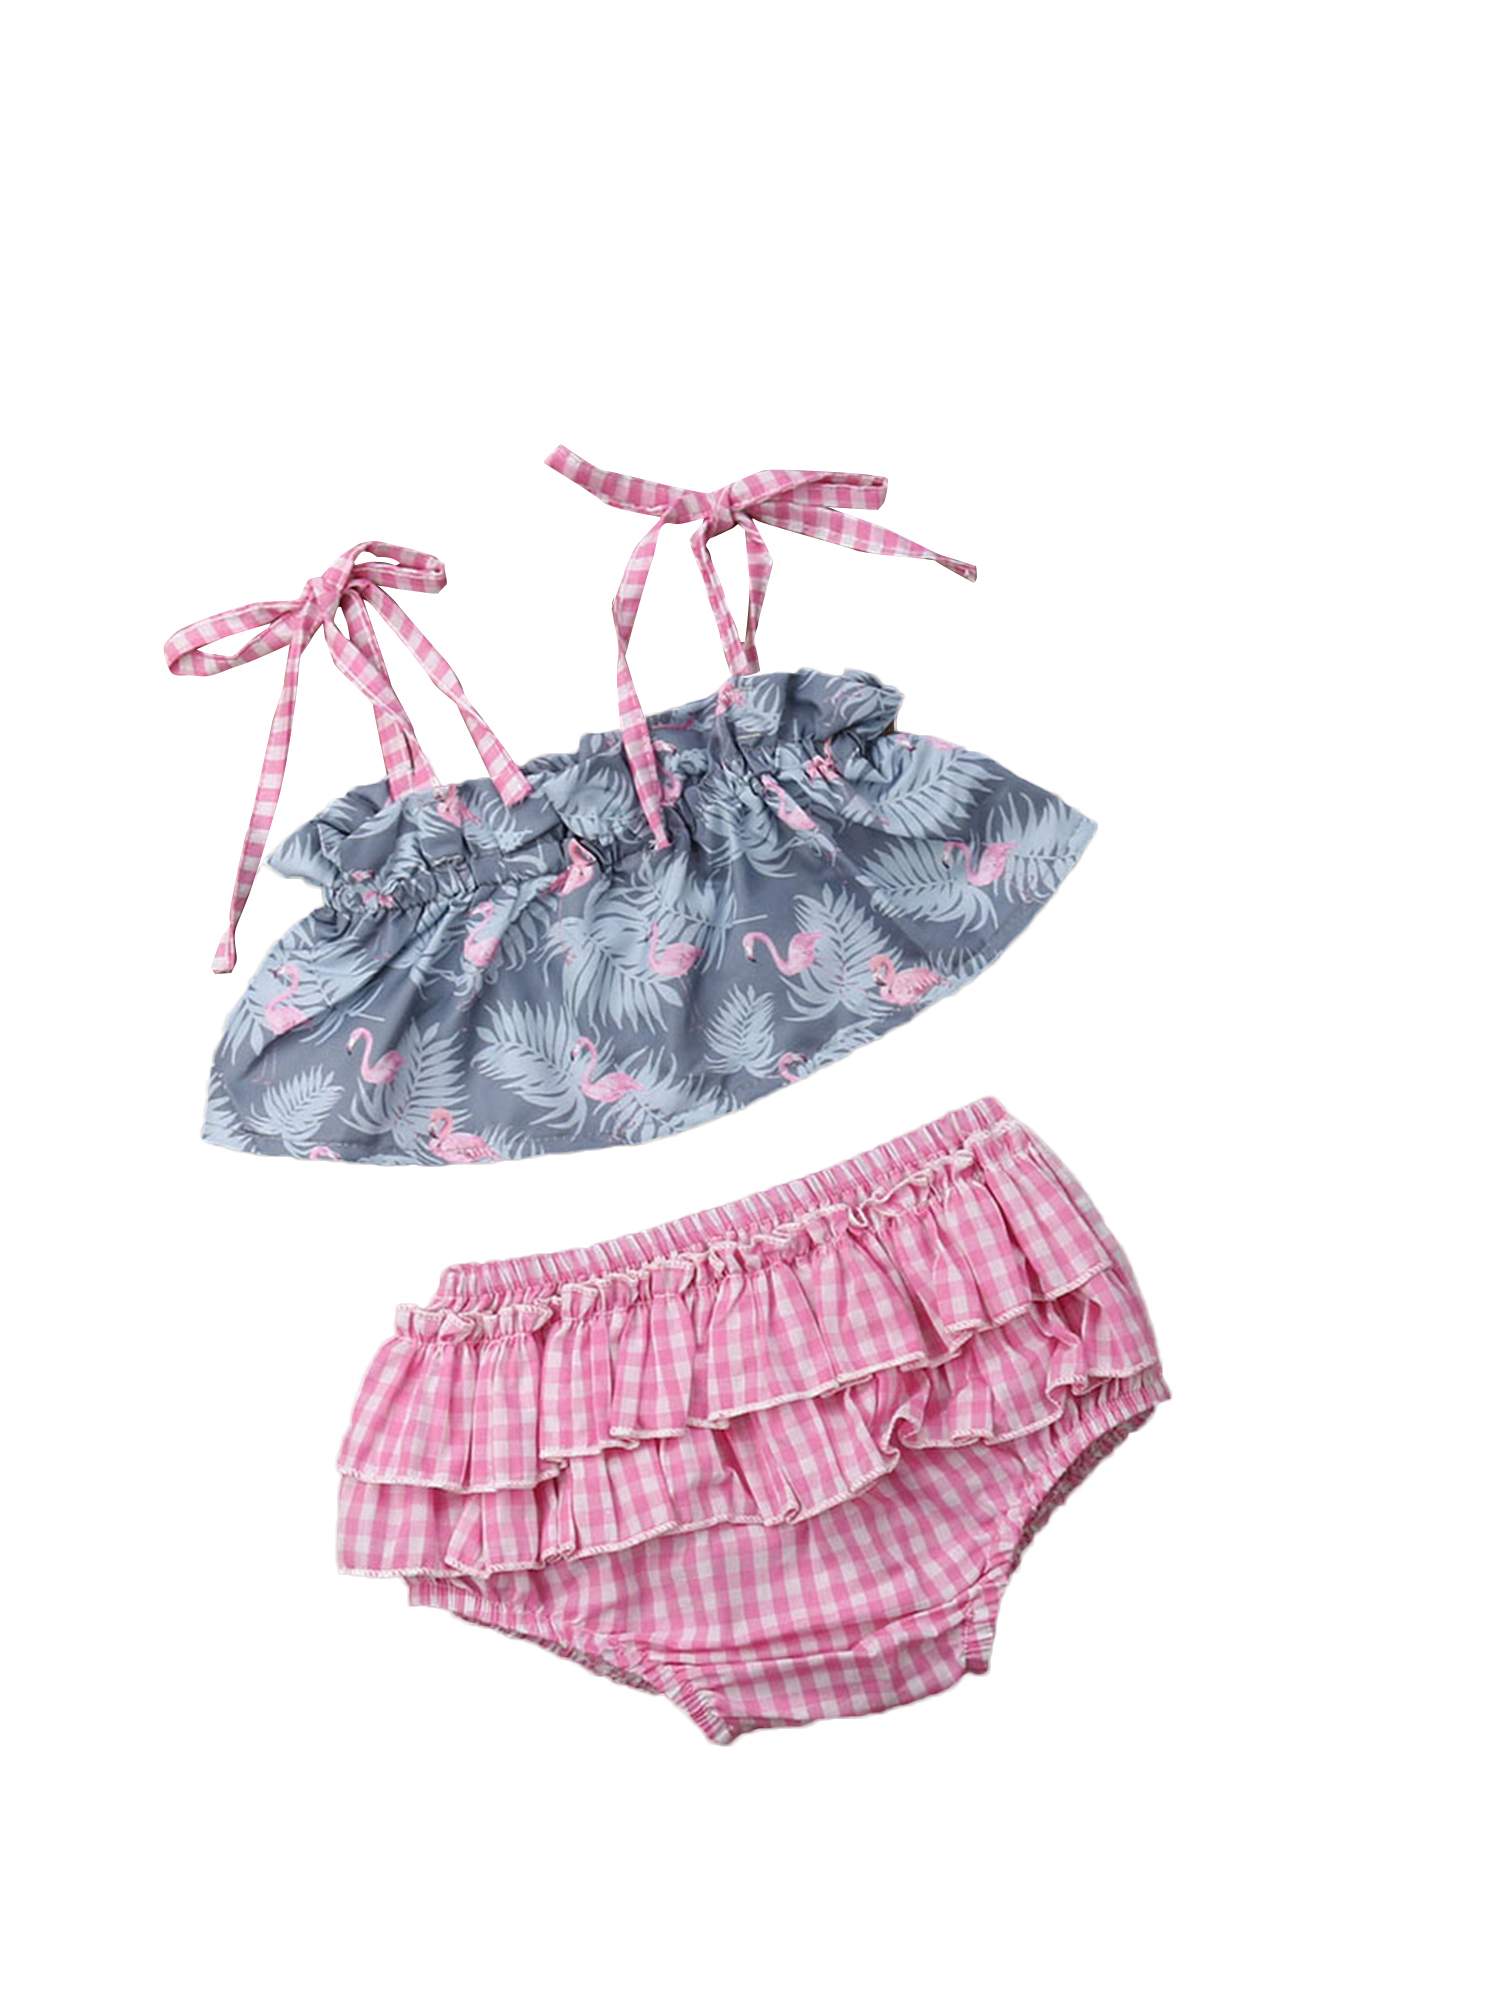 18m Unique Baby Girls Summer Vibes Flamingo 3pc Outfit with Headband